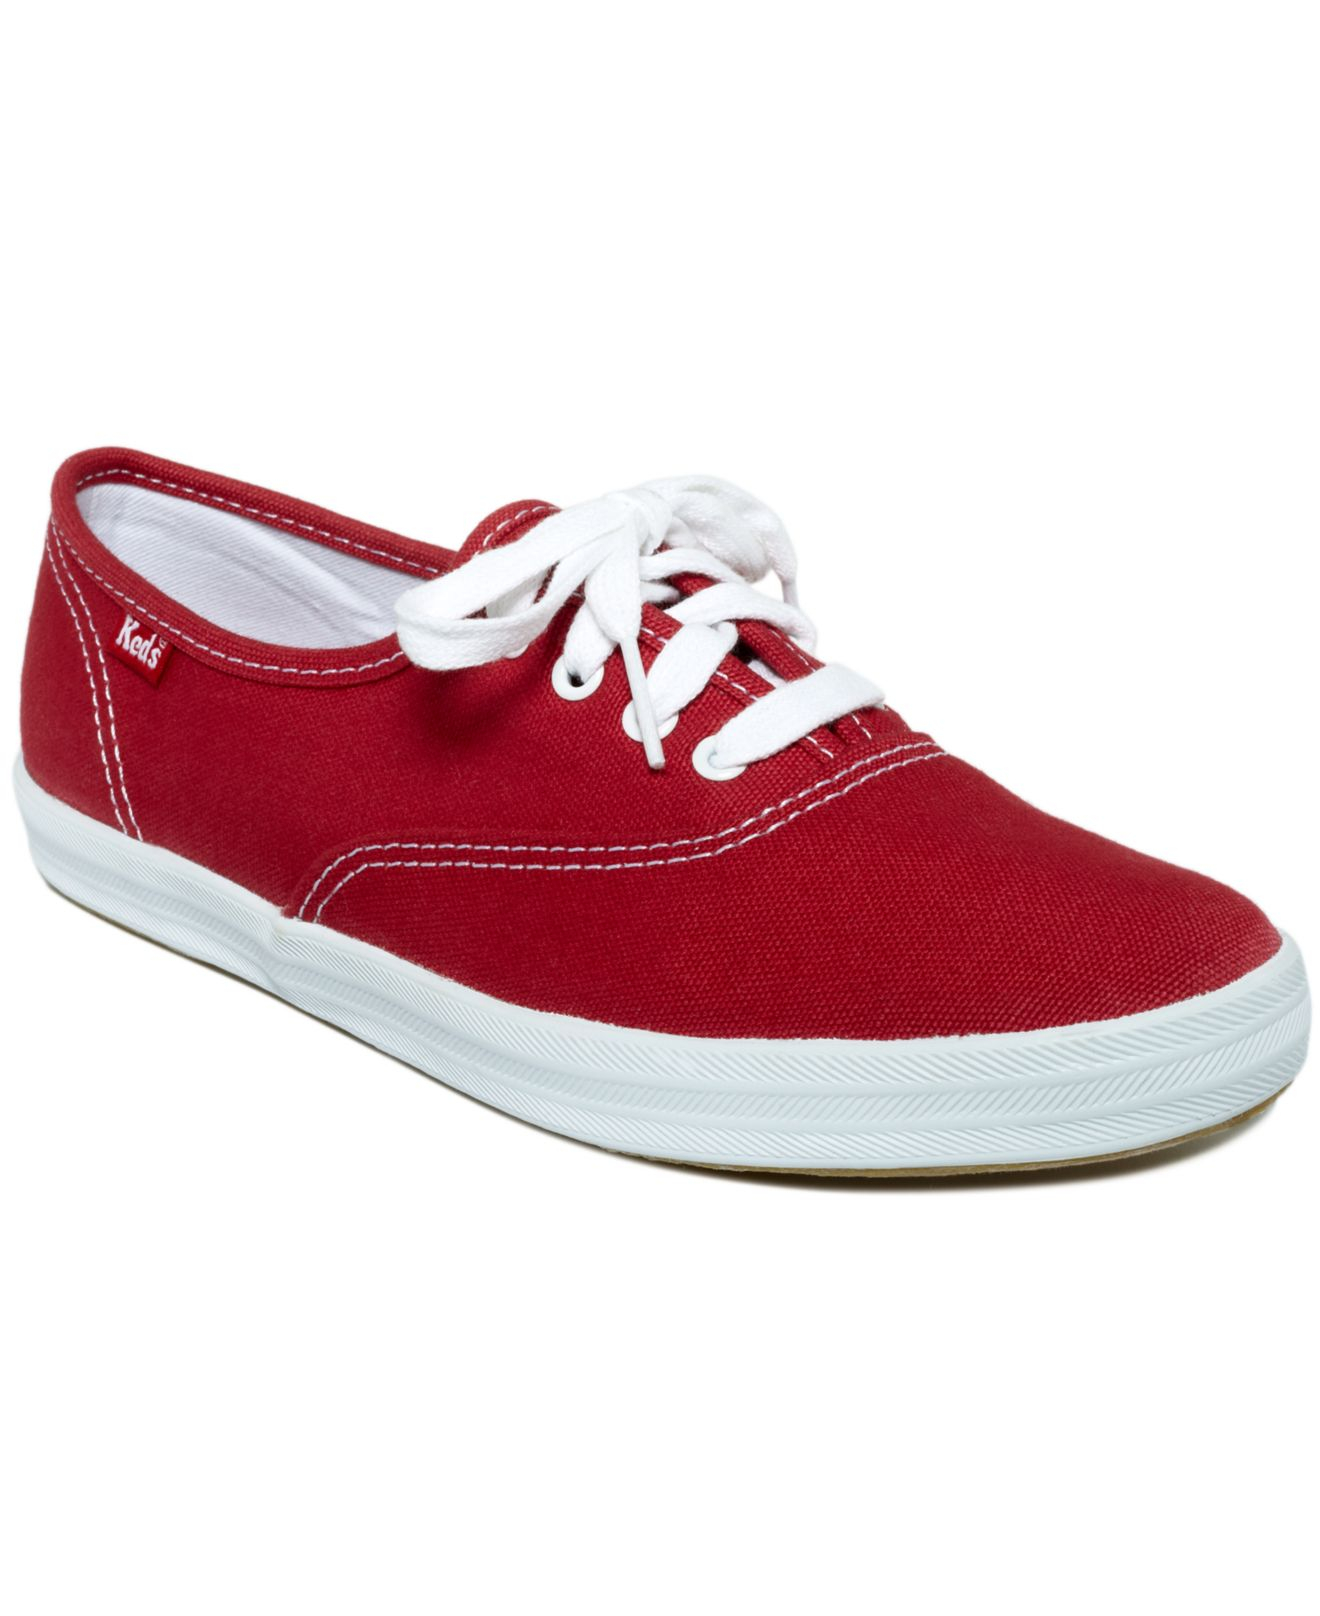 Keds Women's Champion Oxford Sneakers in Red